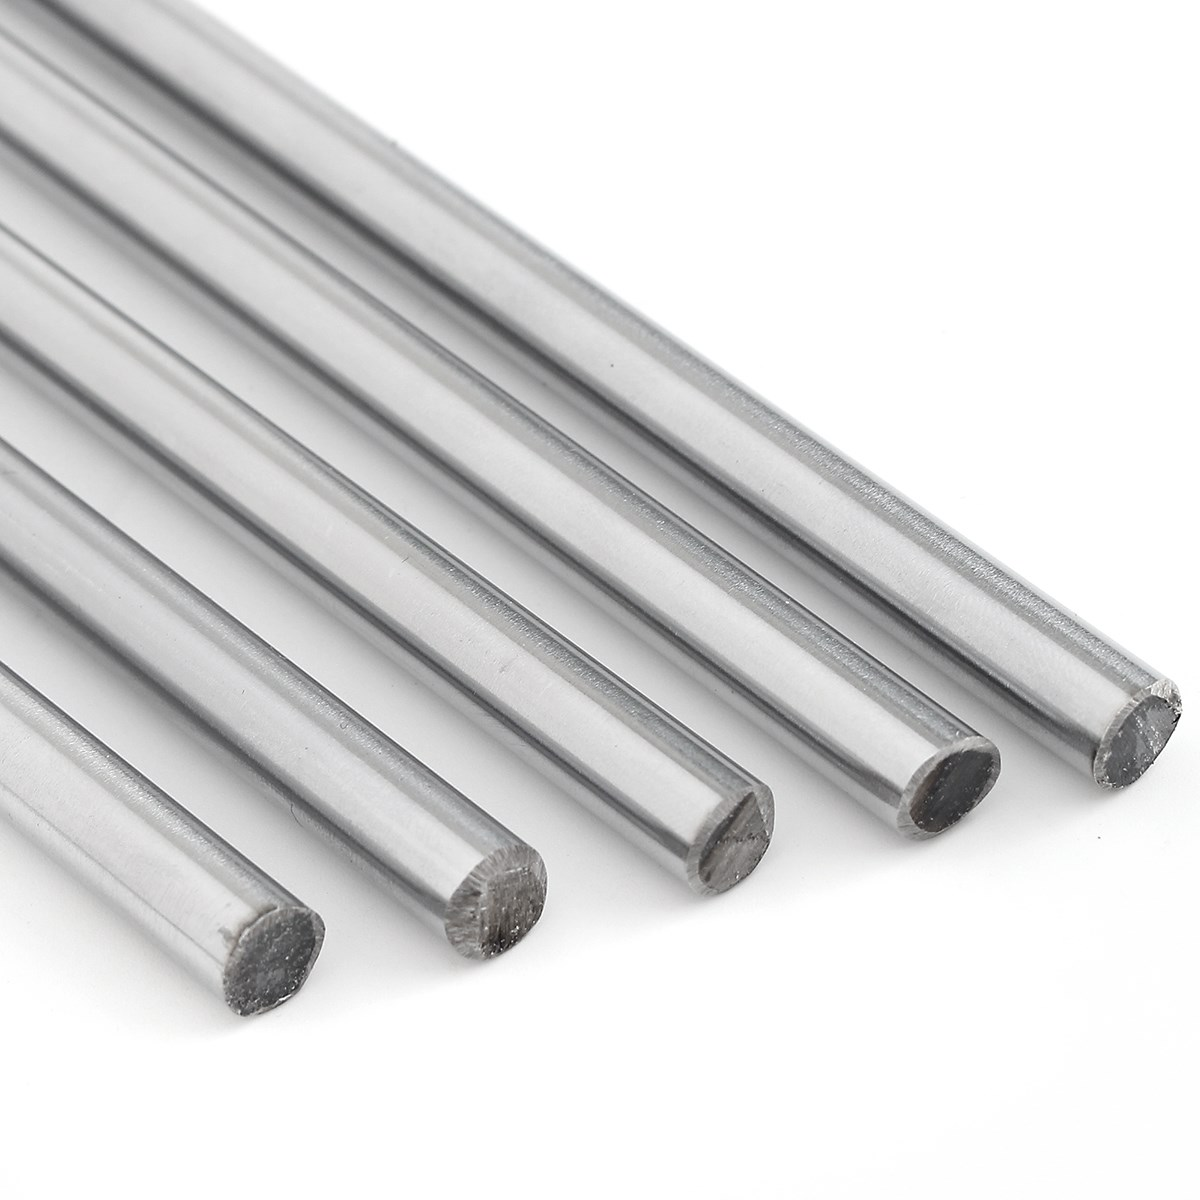 8mm Linear Rod 300/380/400/500mm/600m Chrome Harden Linear Shaft Guide Cnc 3d Printer Parts Liner Rail Linear Shaft Optical Axis 2pcs linear shaft 500mm long diameter 20mm l 500mm harden linear rod round shaft chrome plated